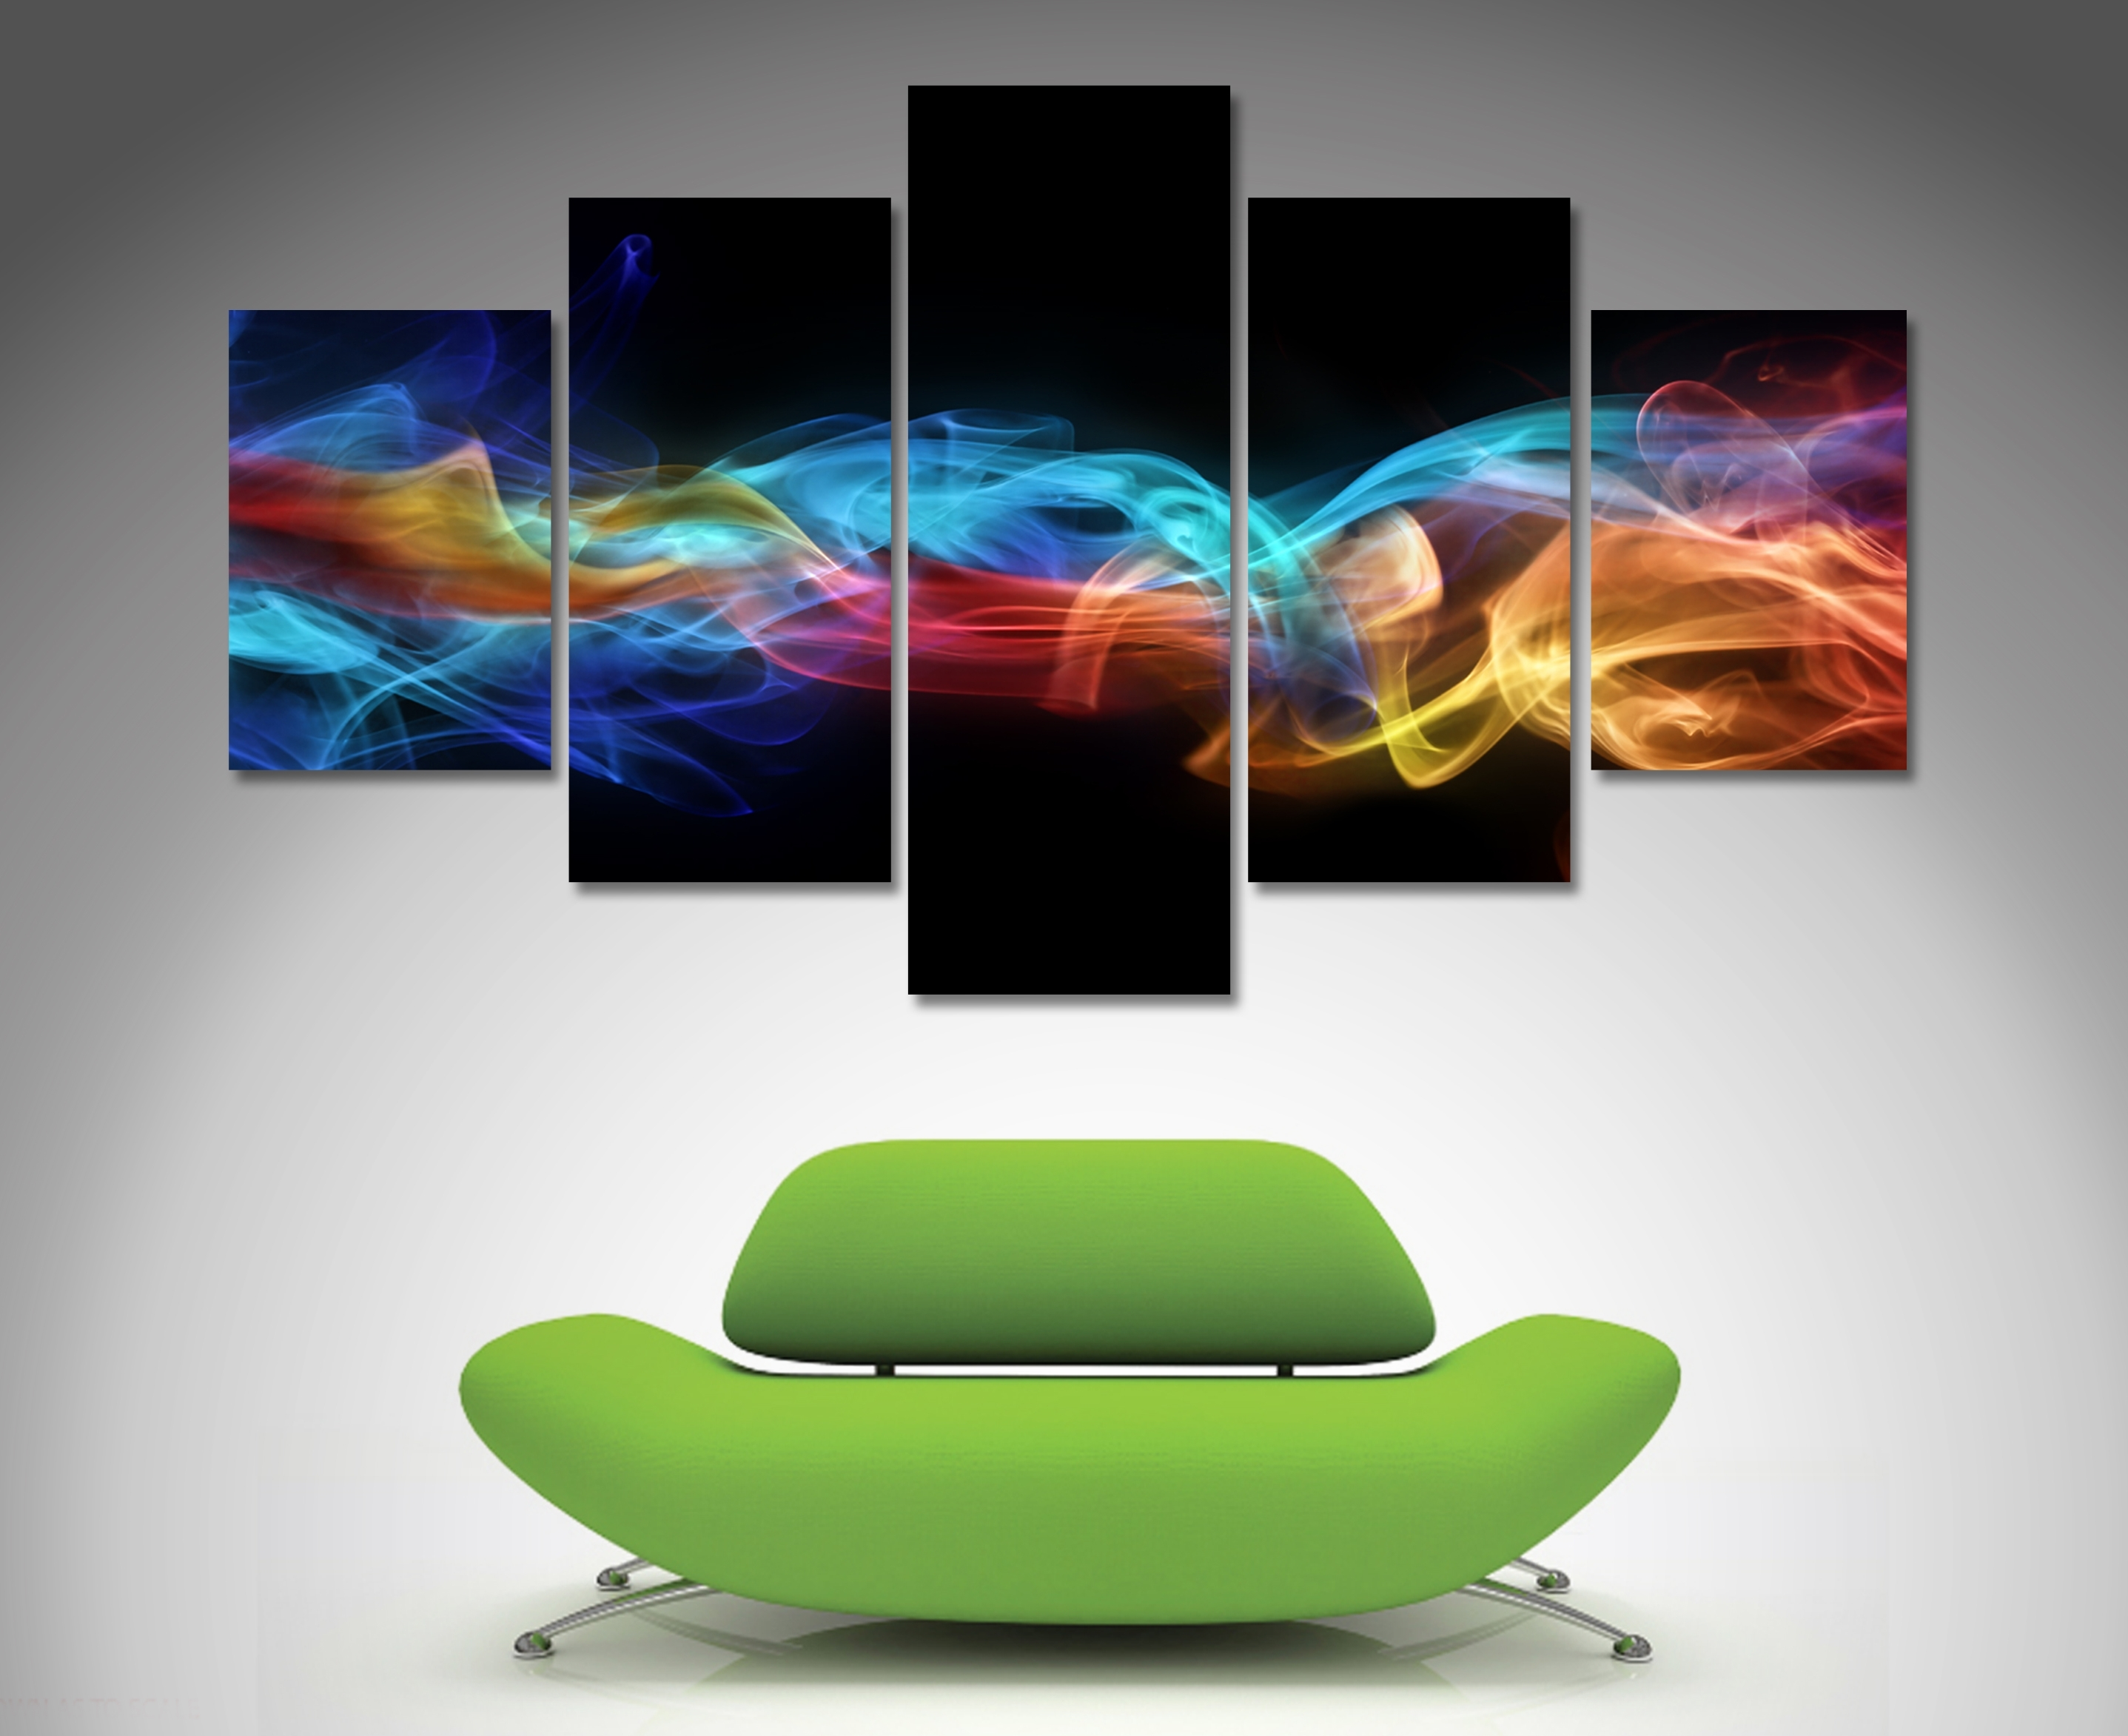 Fire And Ice 5 Panel Wall Art | Canvas Printing Australia Pertaining To Current Wall Art Prints (View 6 of 20)